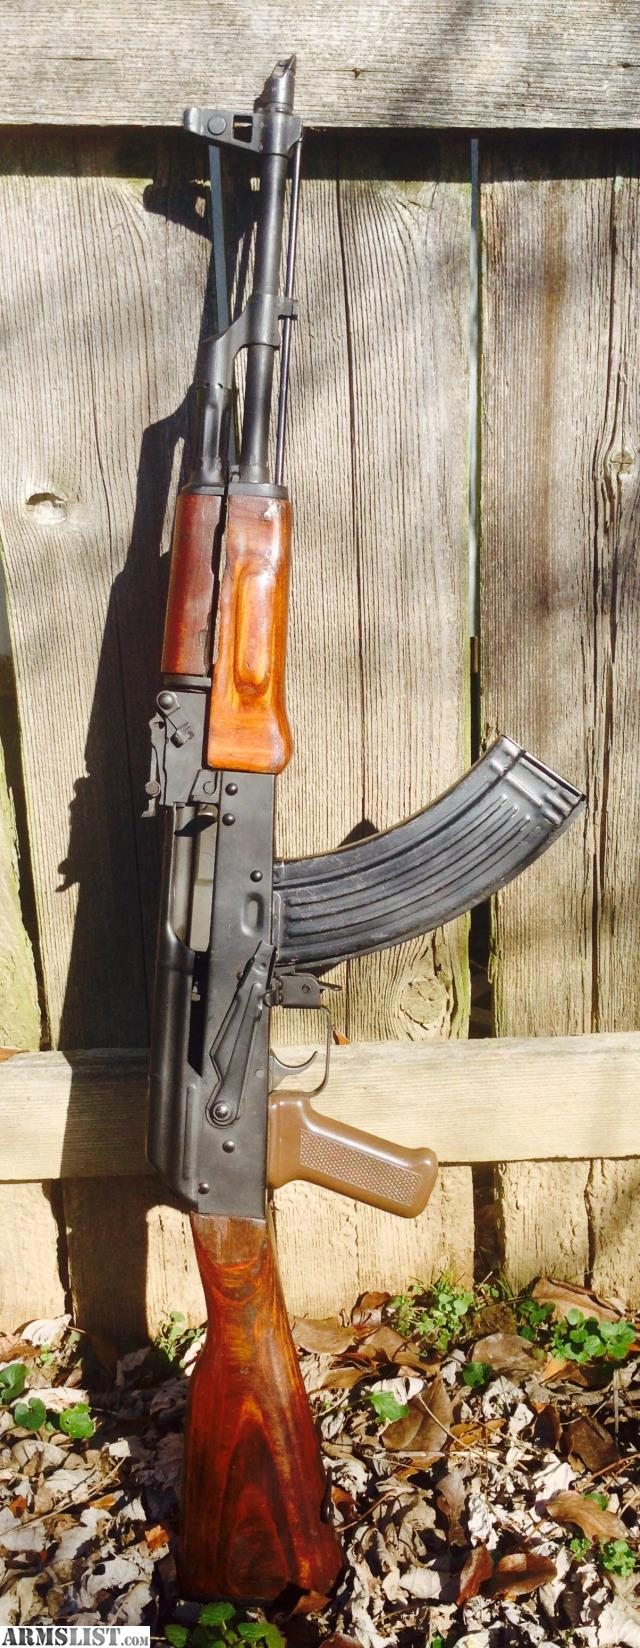 Ak ak 47 for sale by owner - Single Owner Bought 5 Years Ago From Atlantic Firearms Arabic Inscription On Receiver And Distance Numerals Are In Arabic